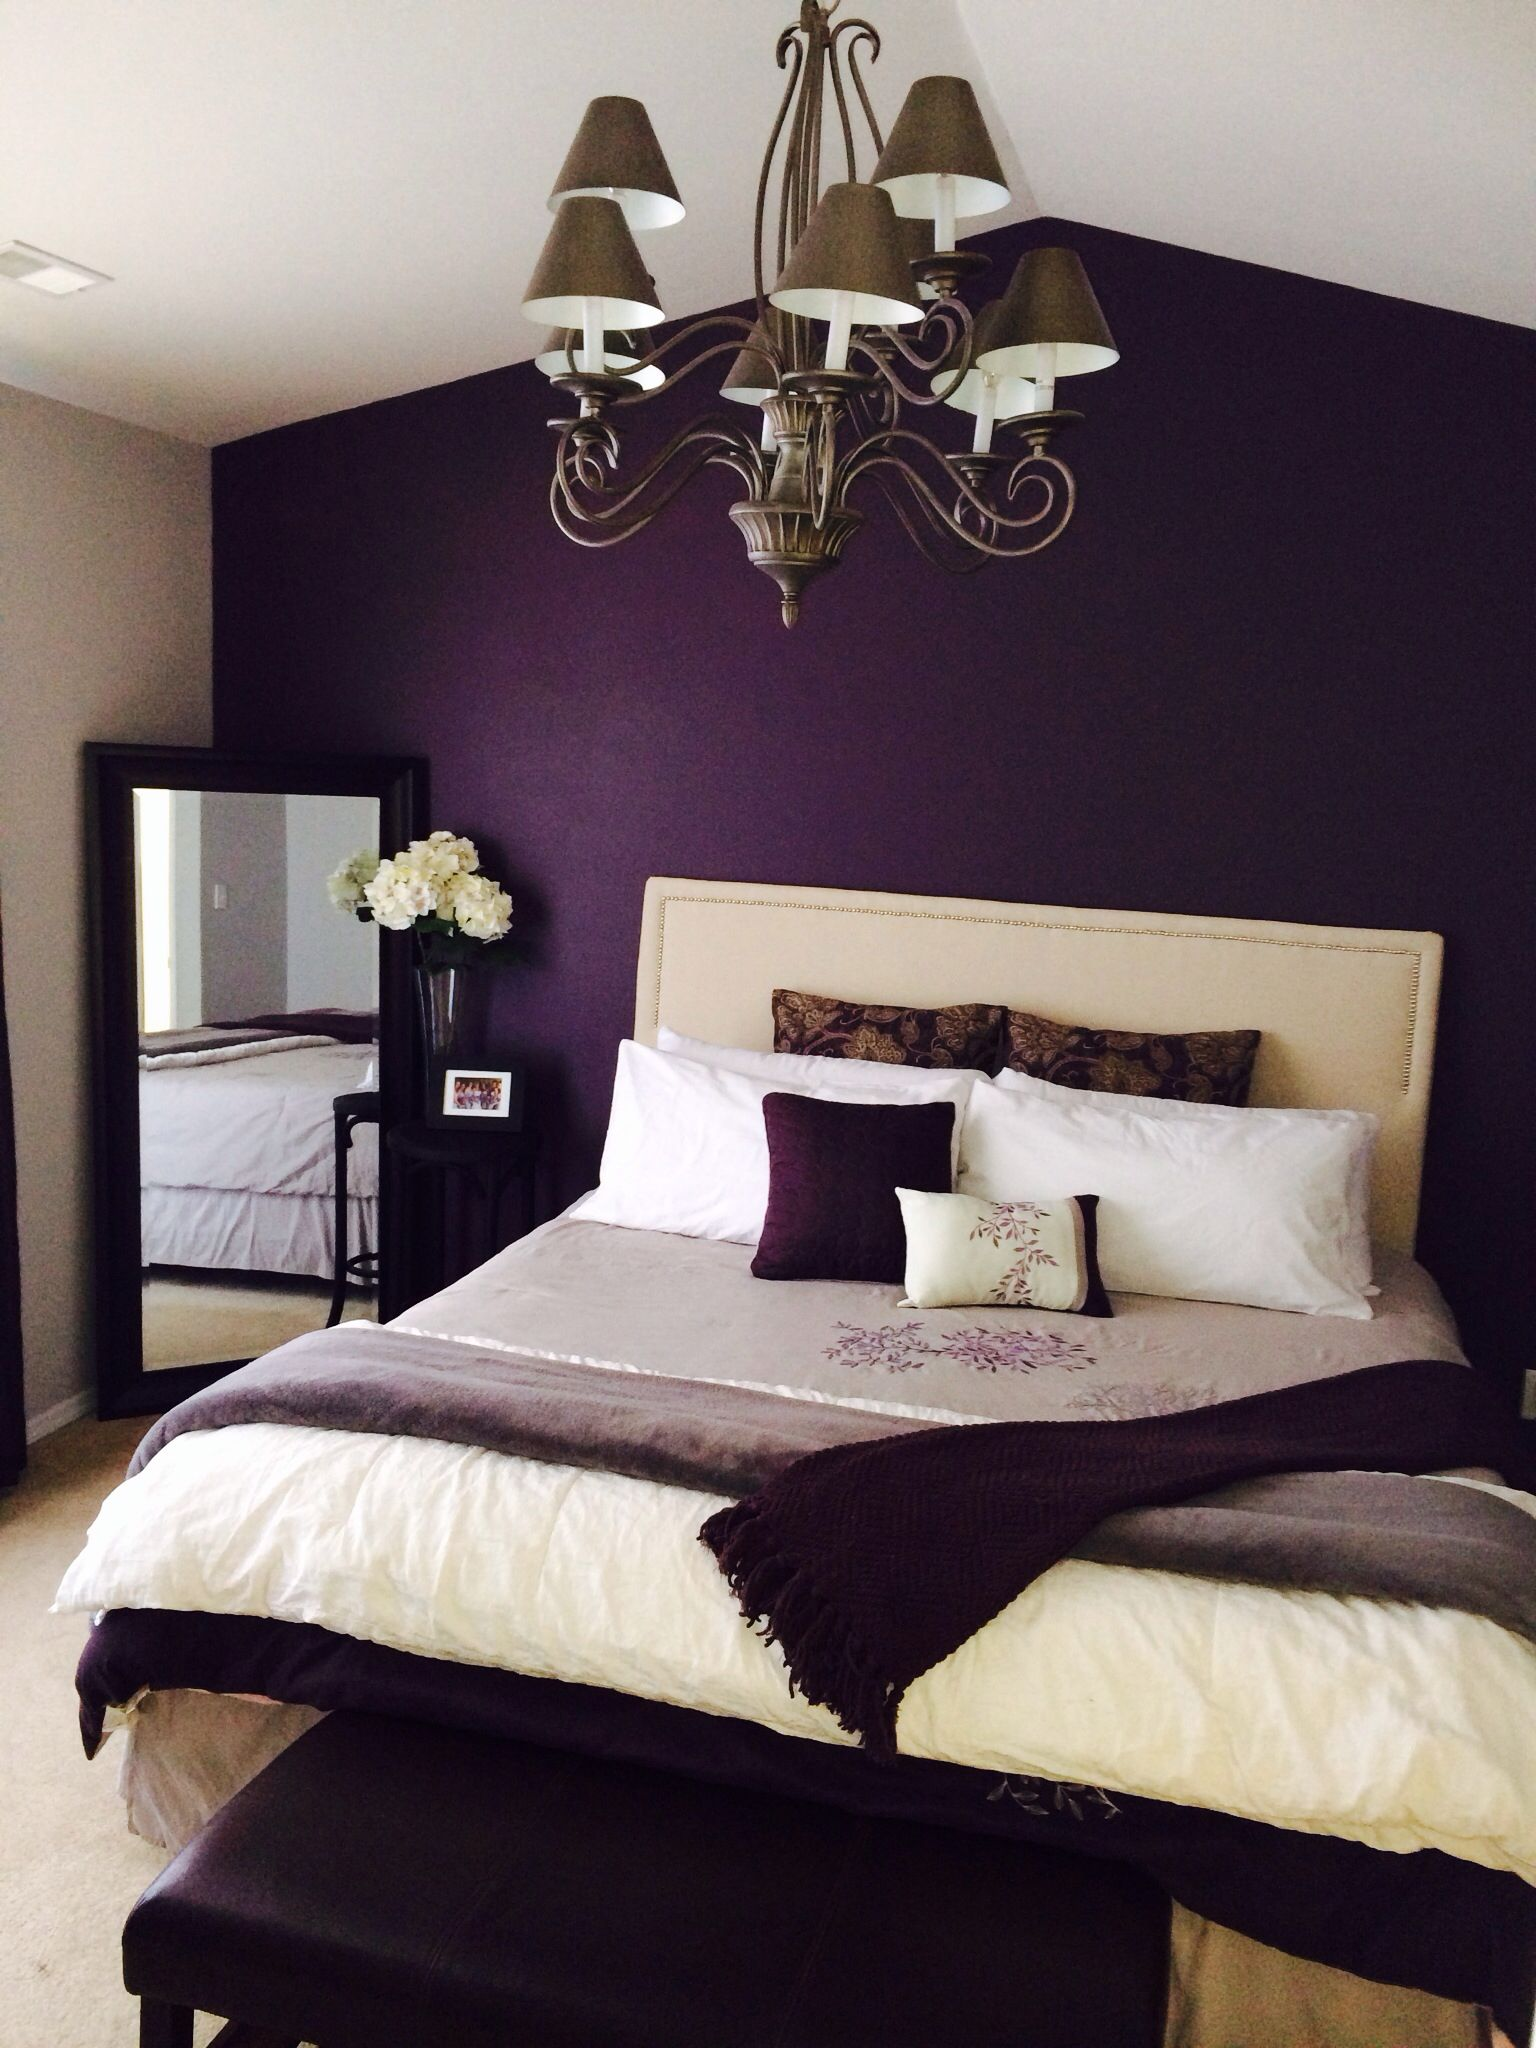 Bedroom colors grey purple - Latest 30 Romantic Bedroom Ideas To Make The Love Happen